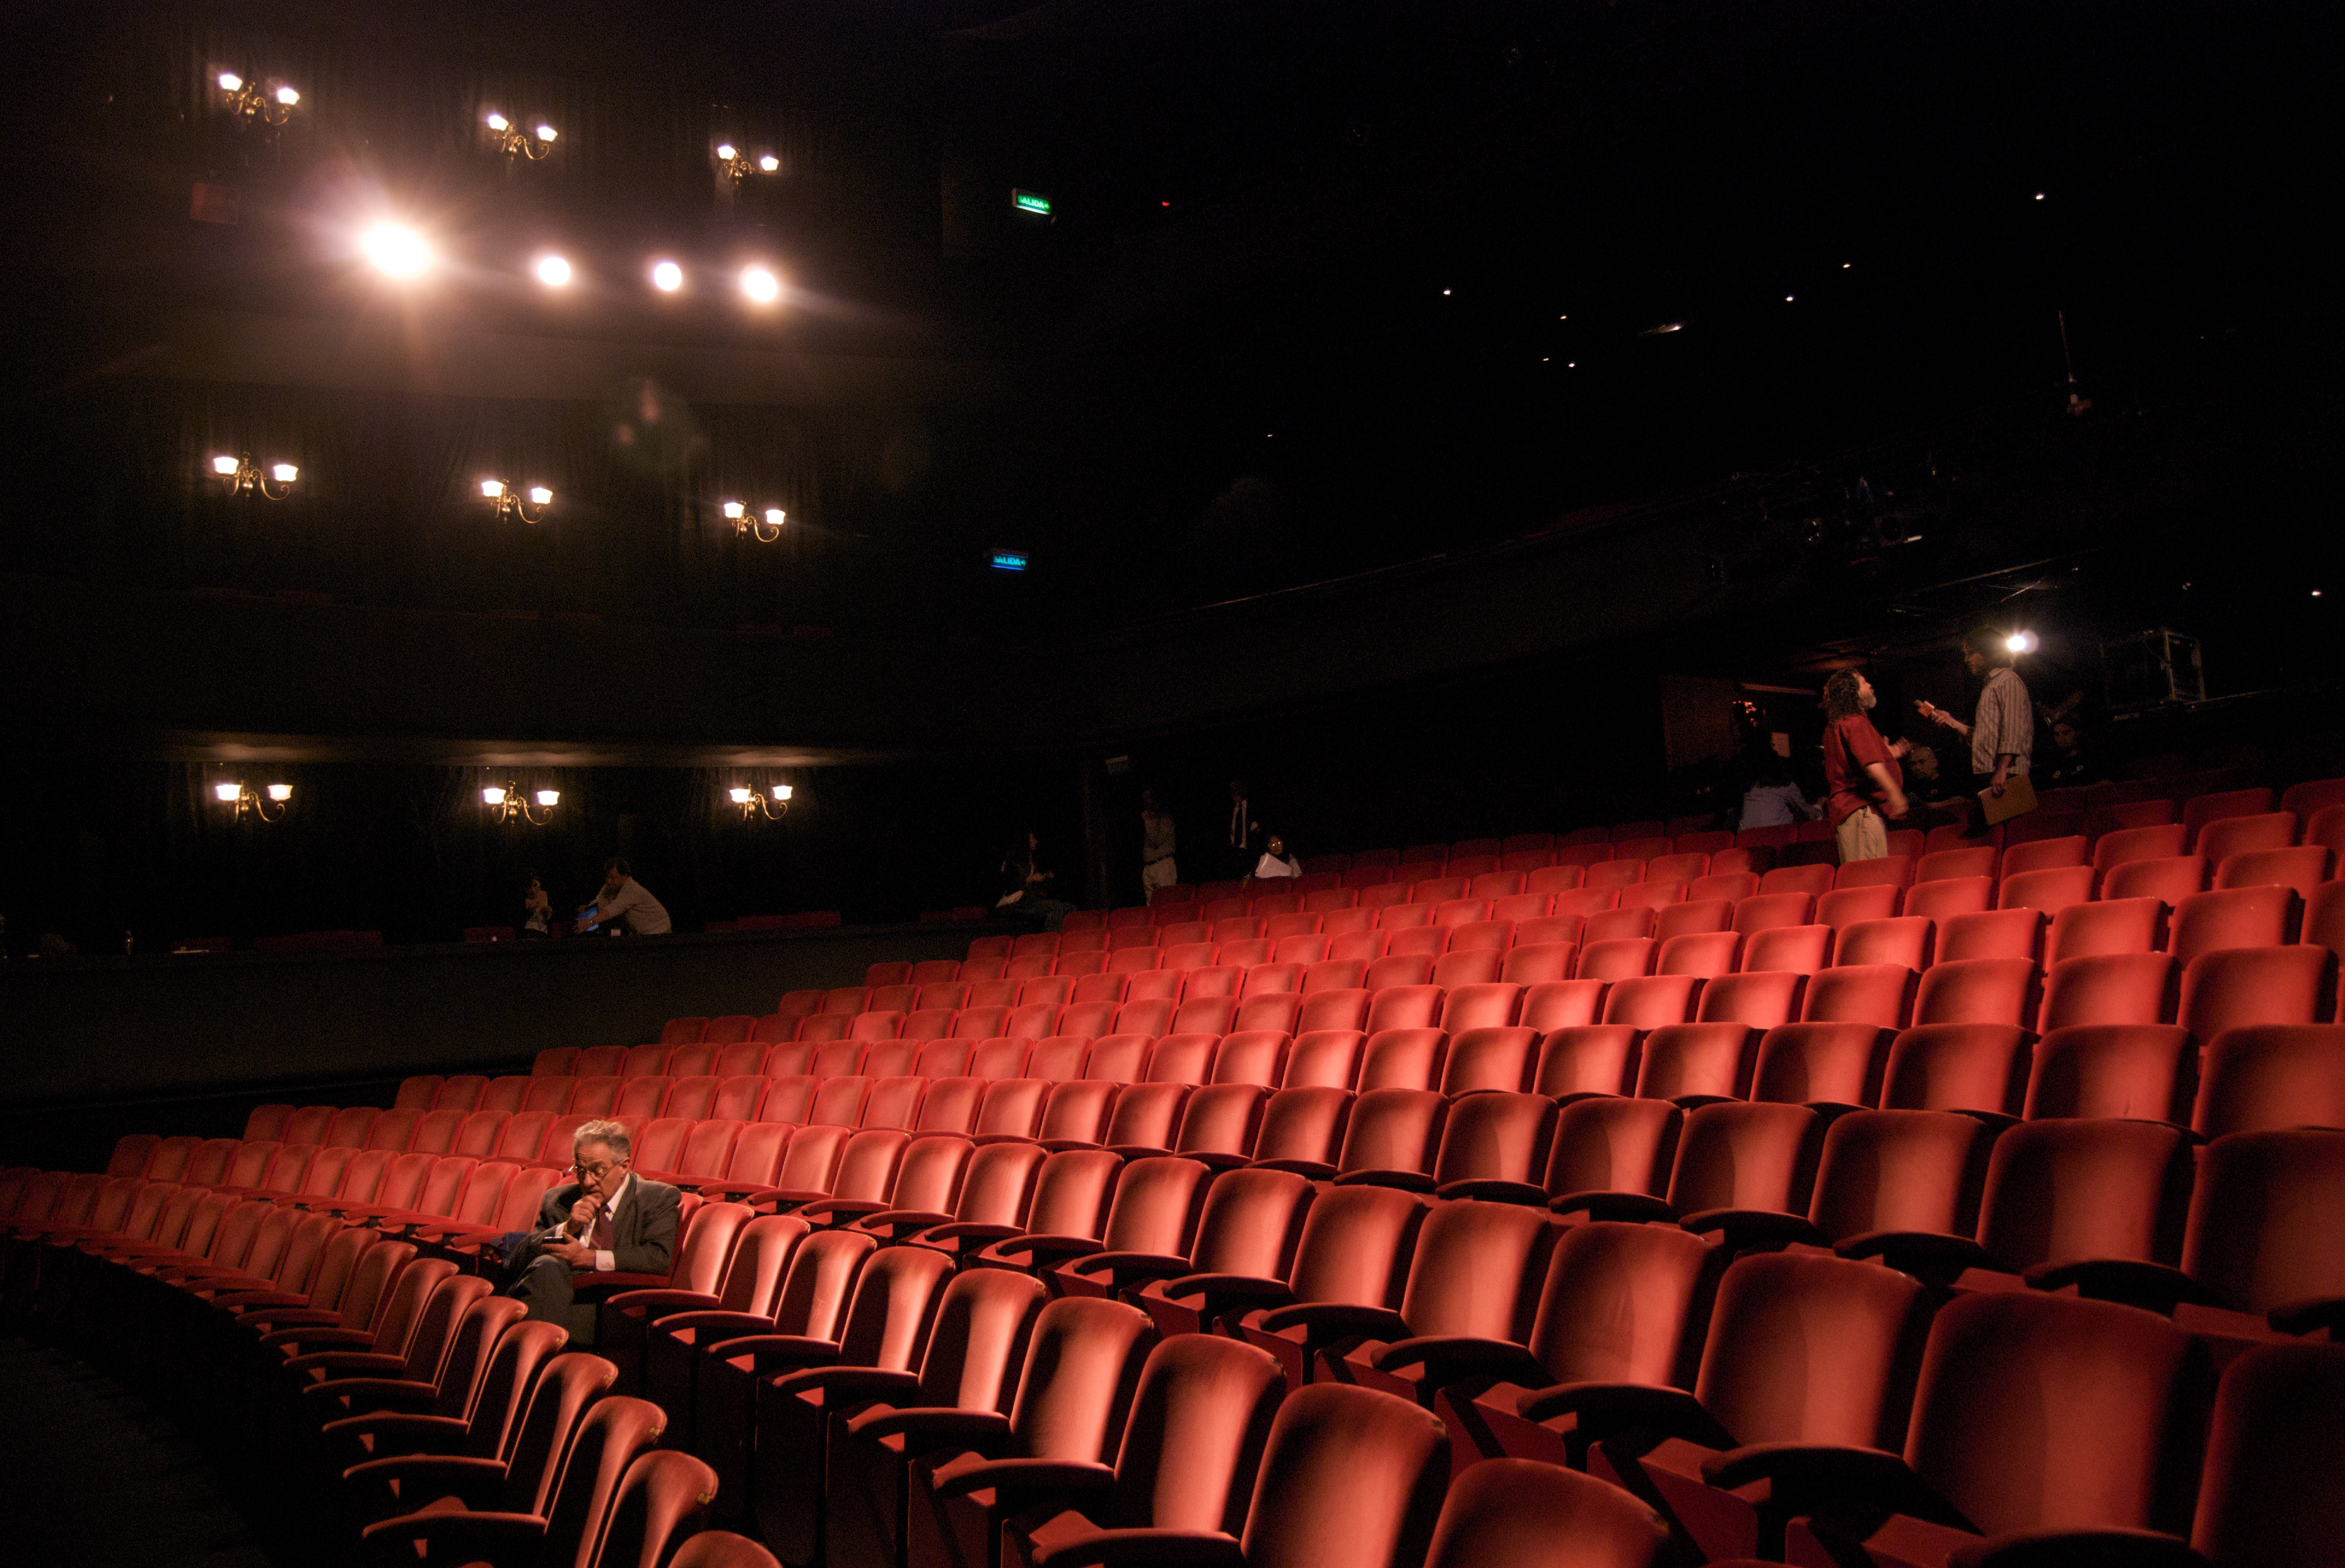 File:Richard in an empty theater.jpg - Wikimedia Commons